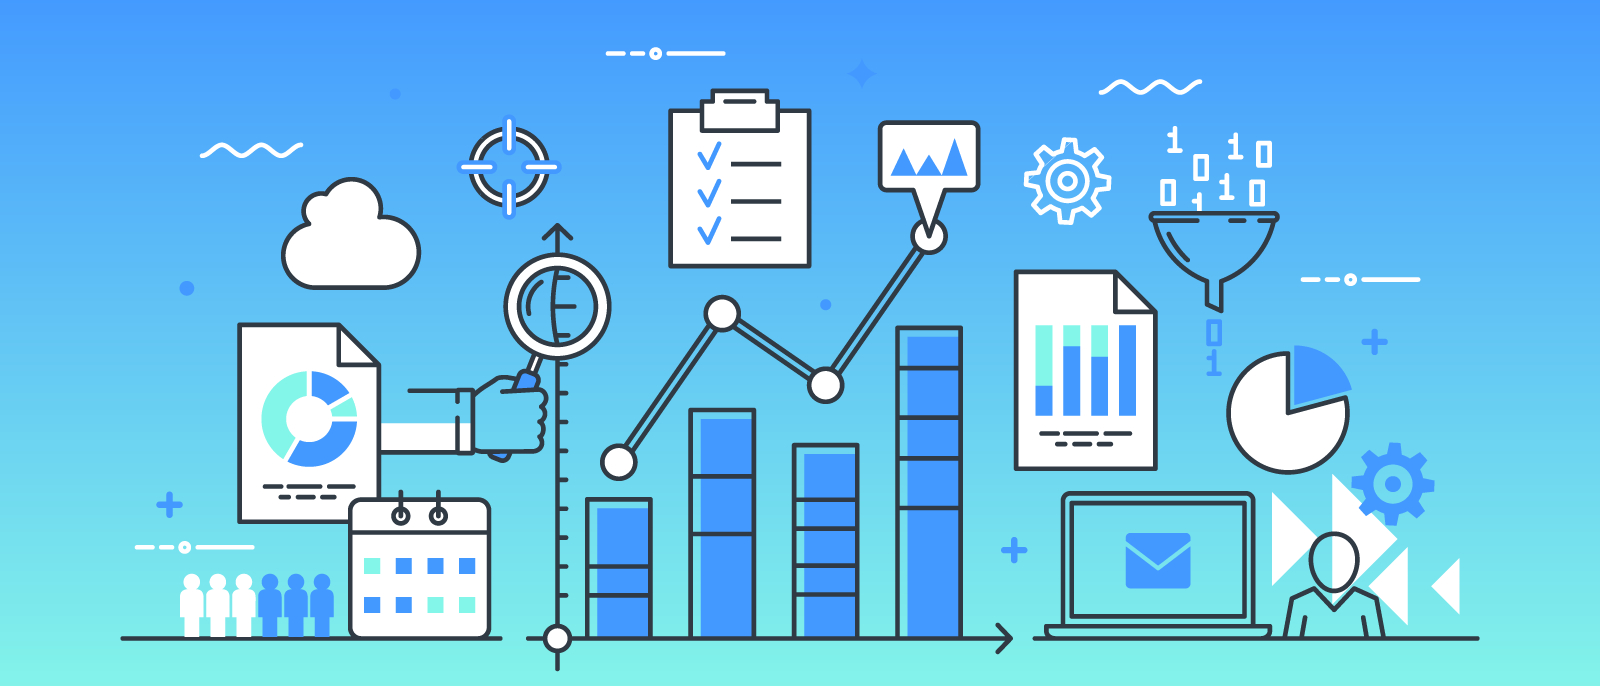 What Is Gap Analysis  Steps And Examples To Use  Lucidchart Blog Pertaining To Gap Analysis Report Template Free